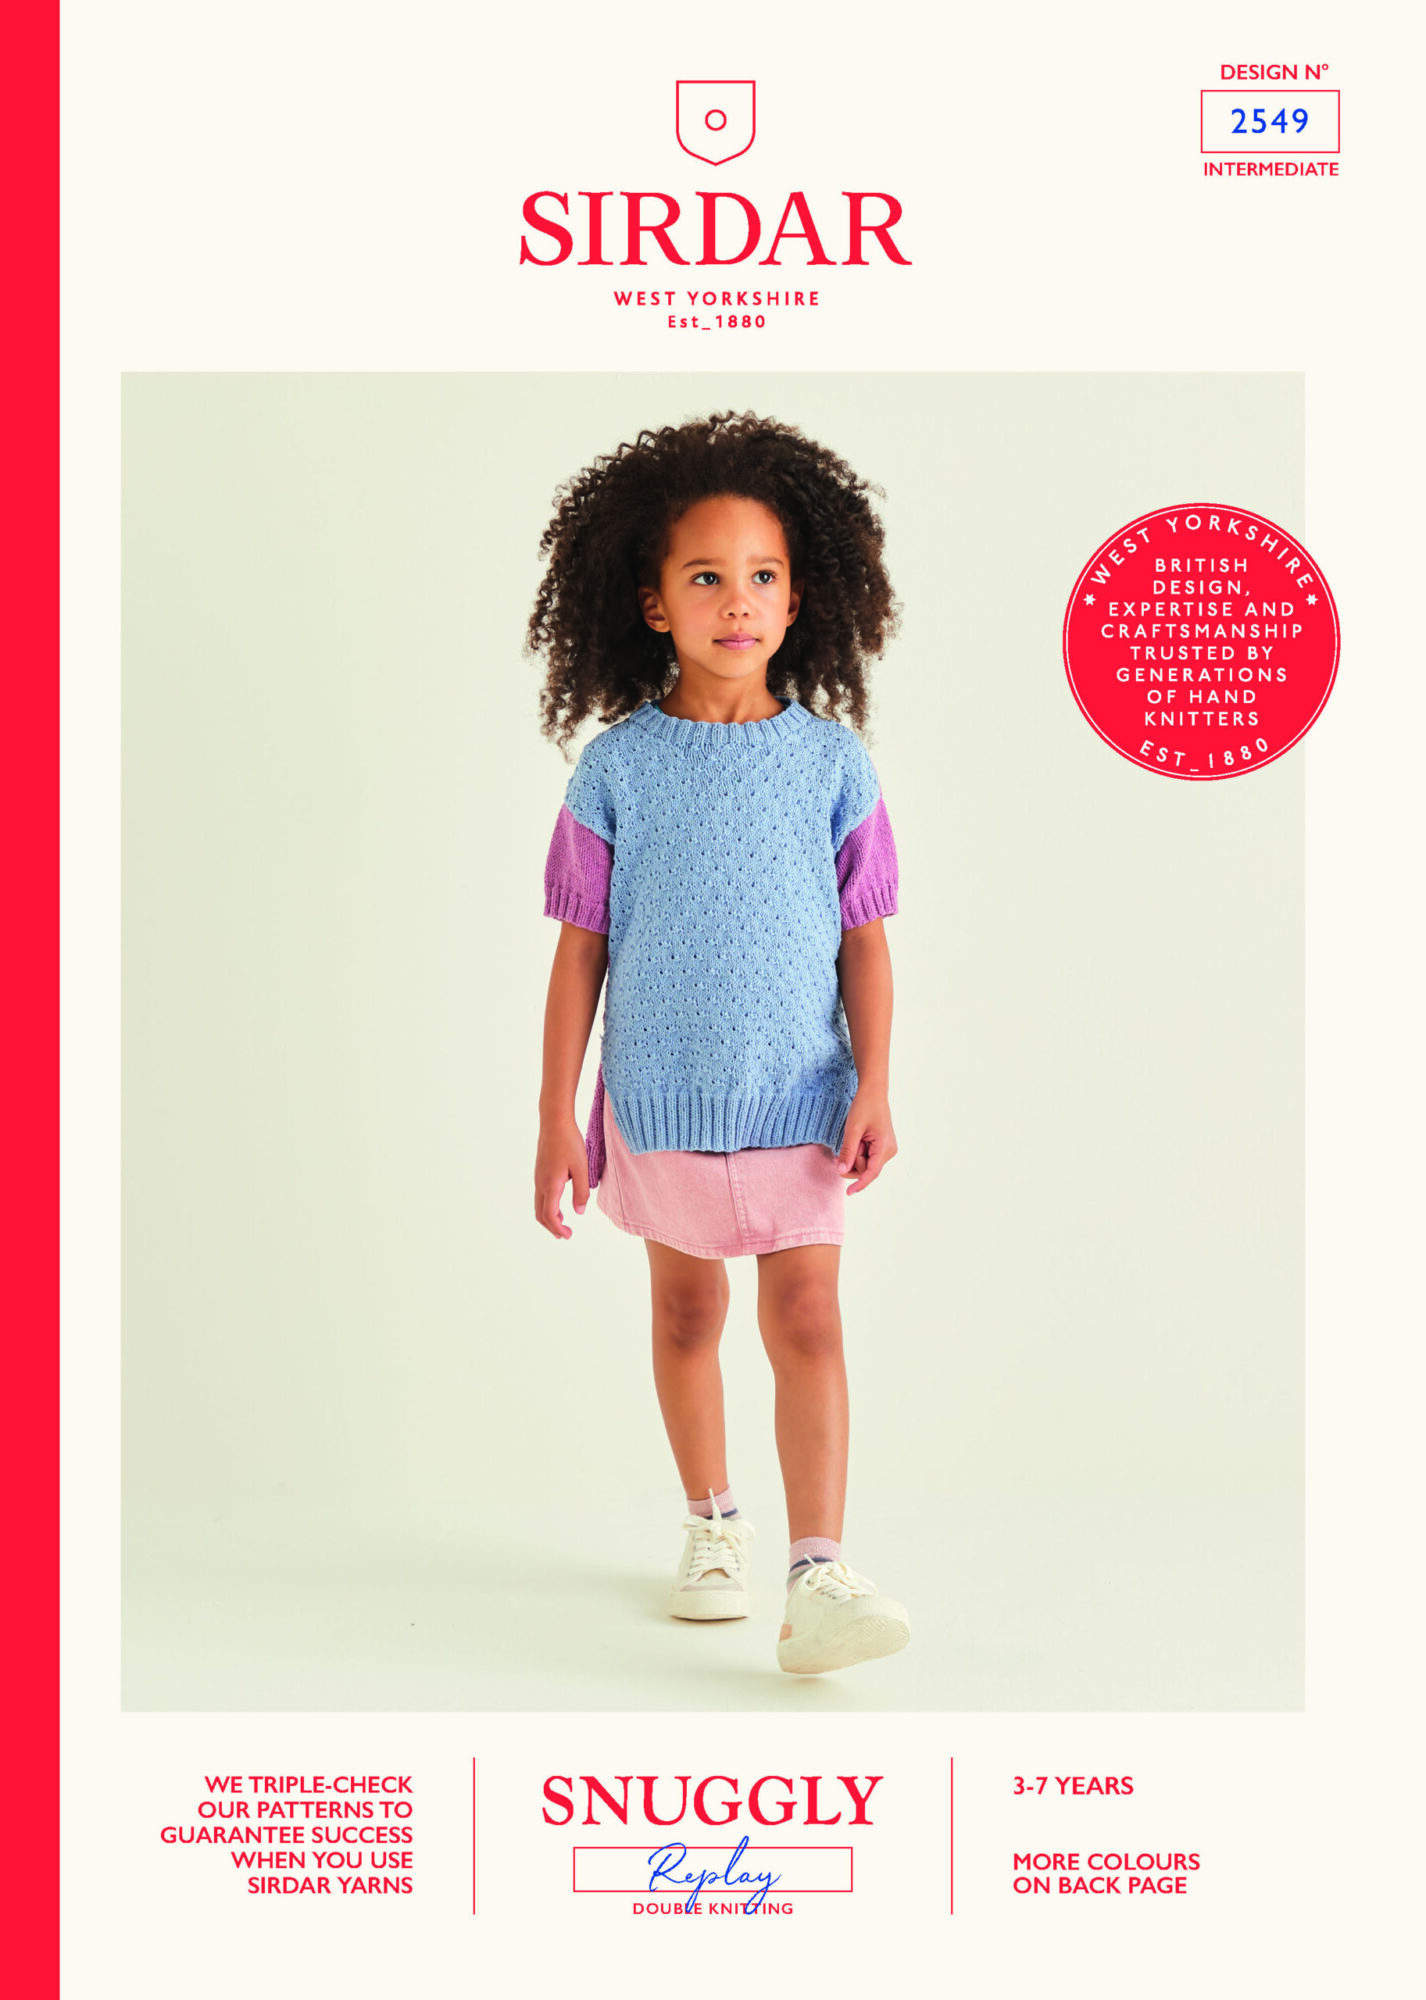 Sirdar Pattern Replay 2549 (Download) product image